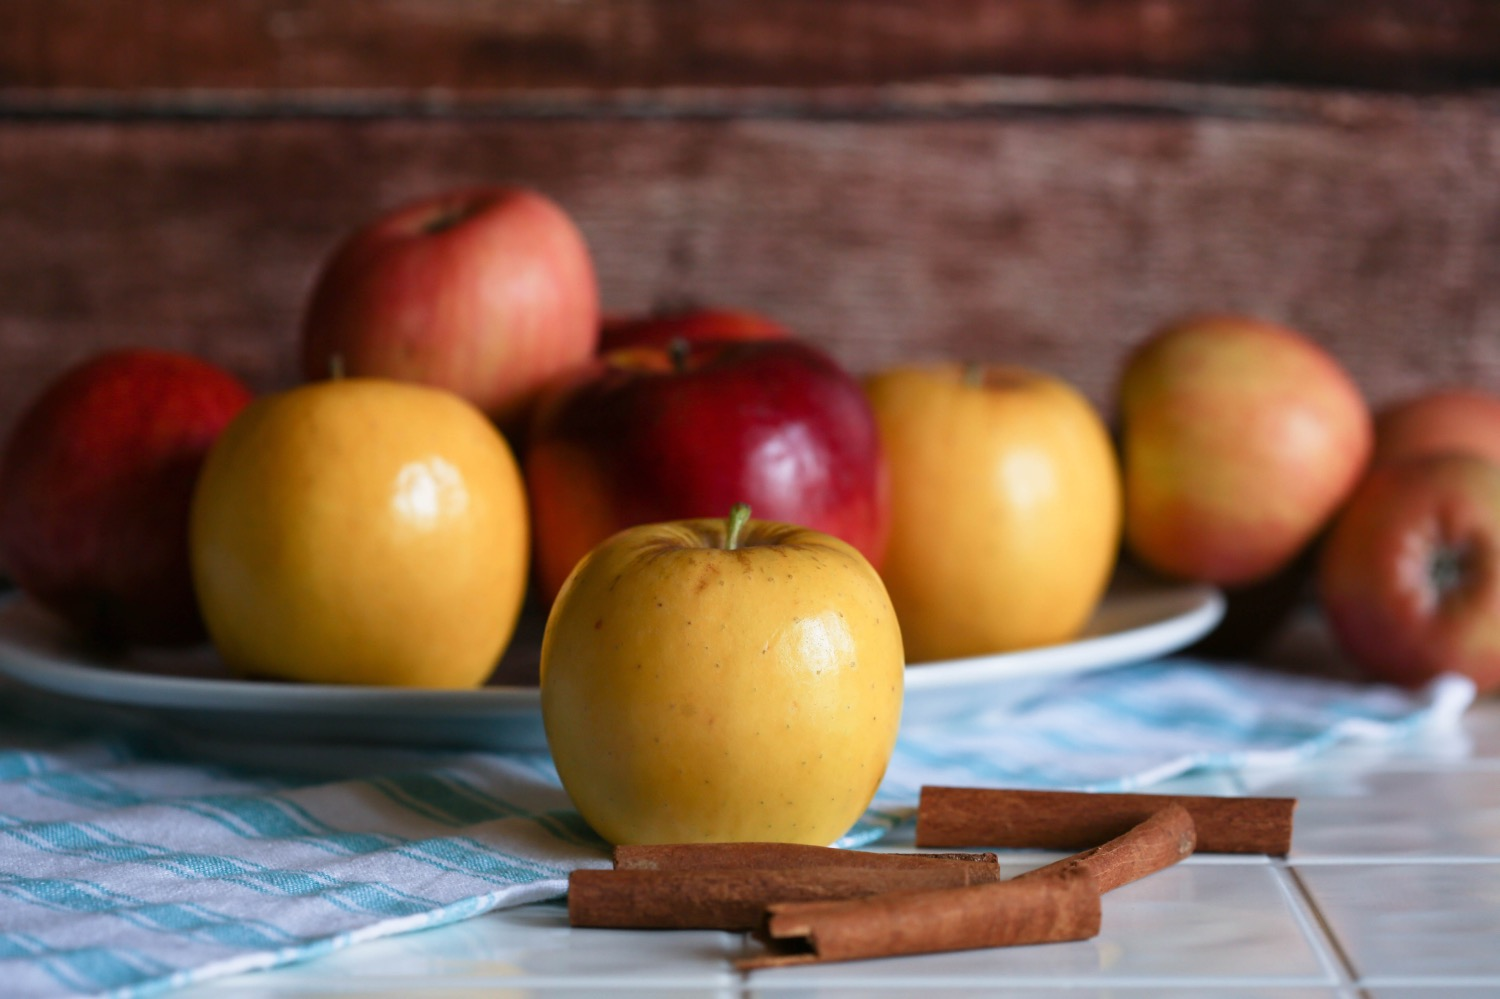 apples supplies to make baked apples recipe